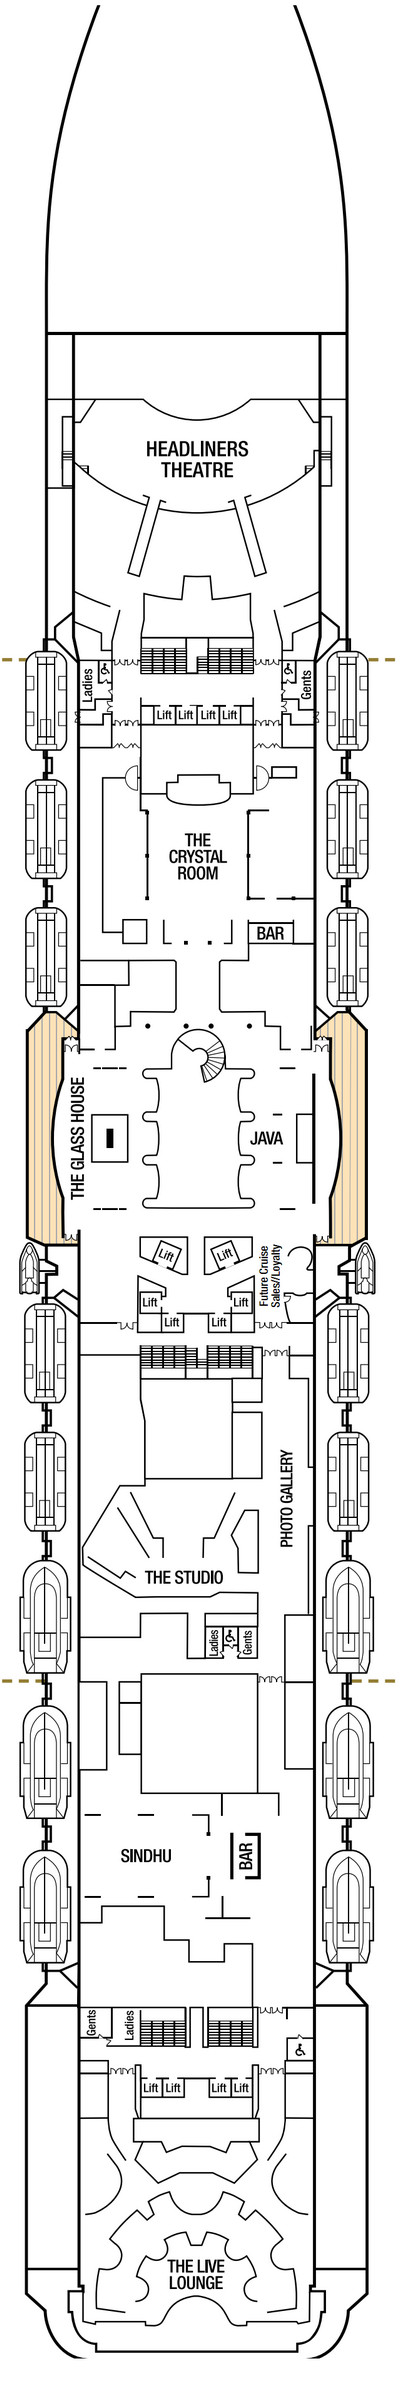 Britannia Deck 7 layout